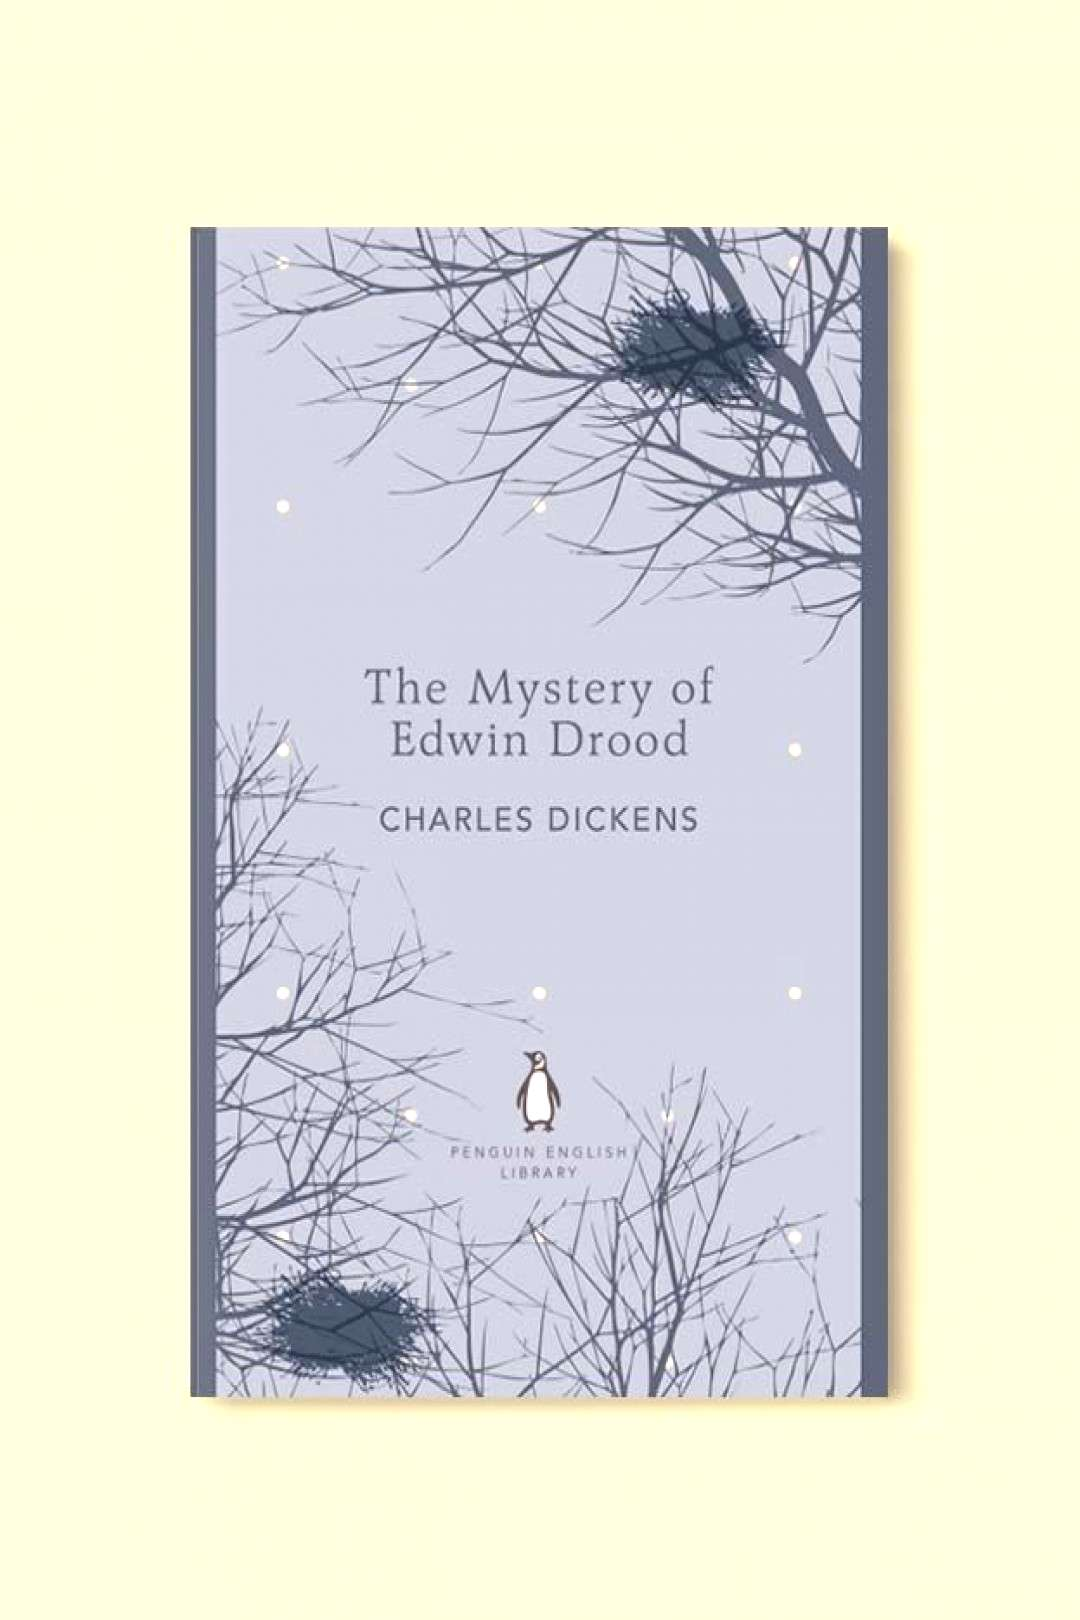 Penguin English Library - The Mystery of Edwin Drood by Charles Dickens. penguin books, penguin cla